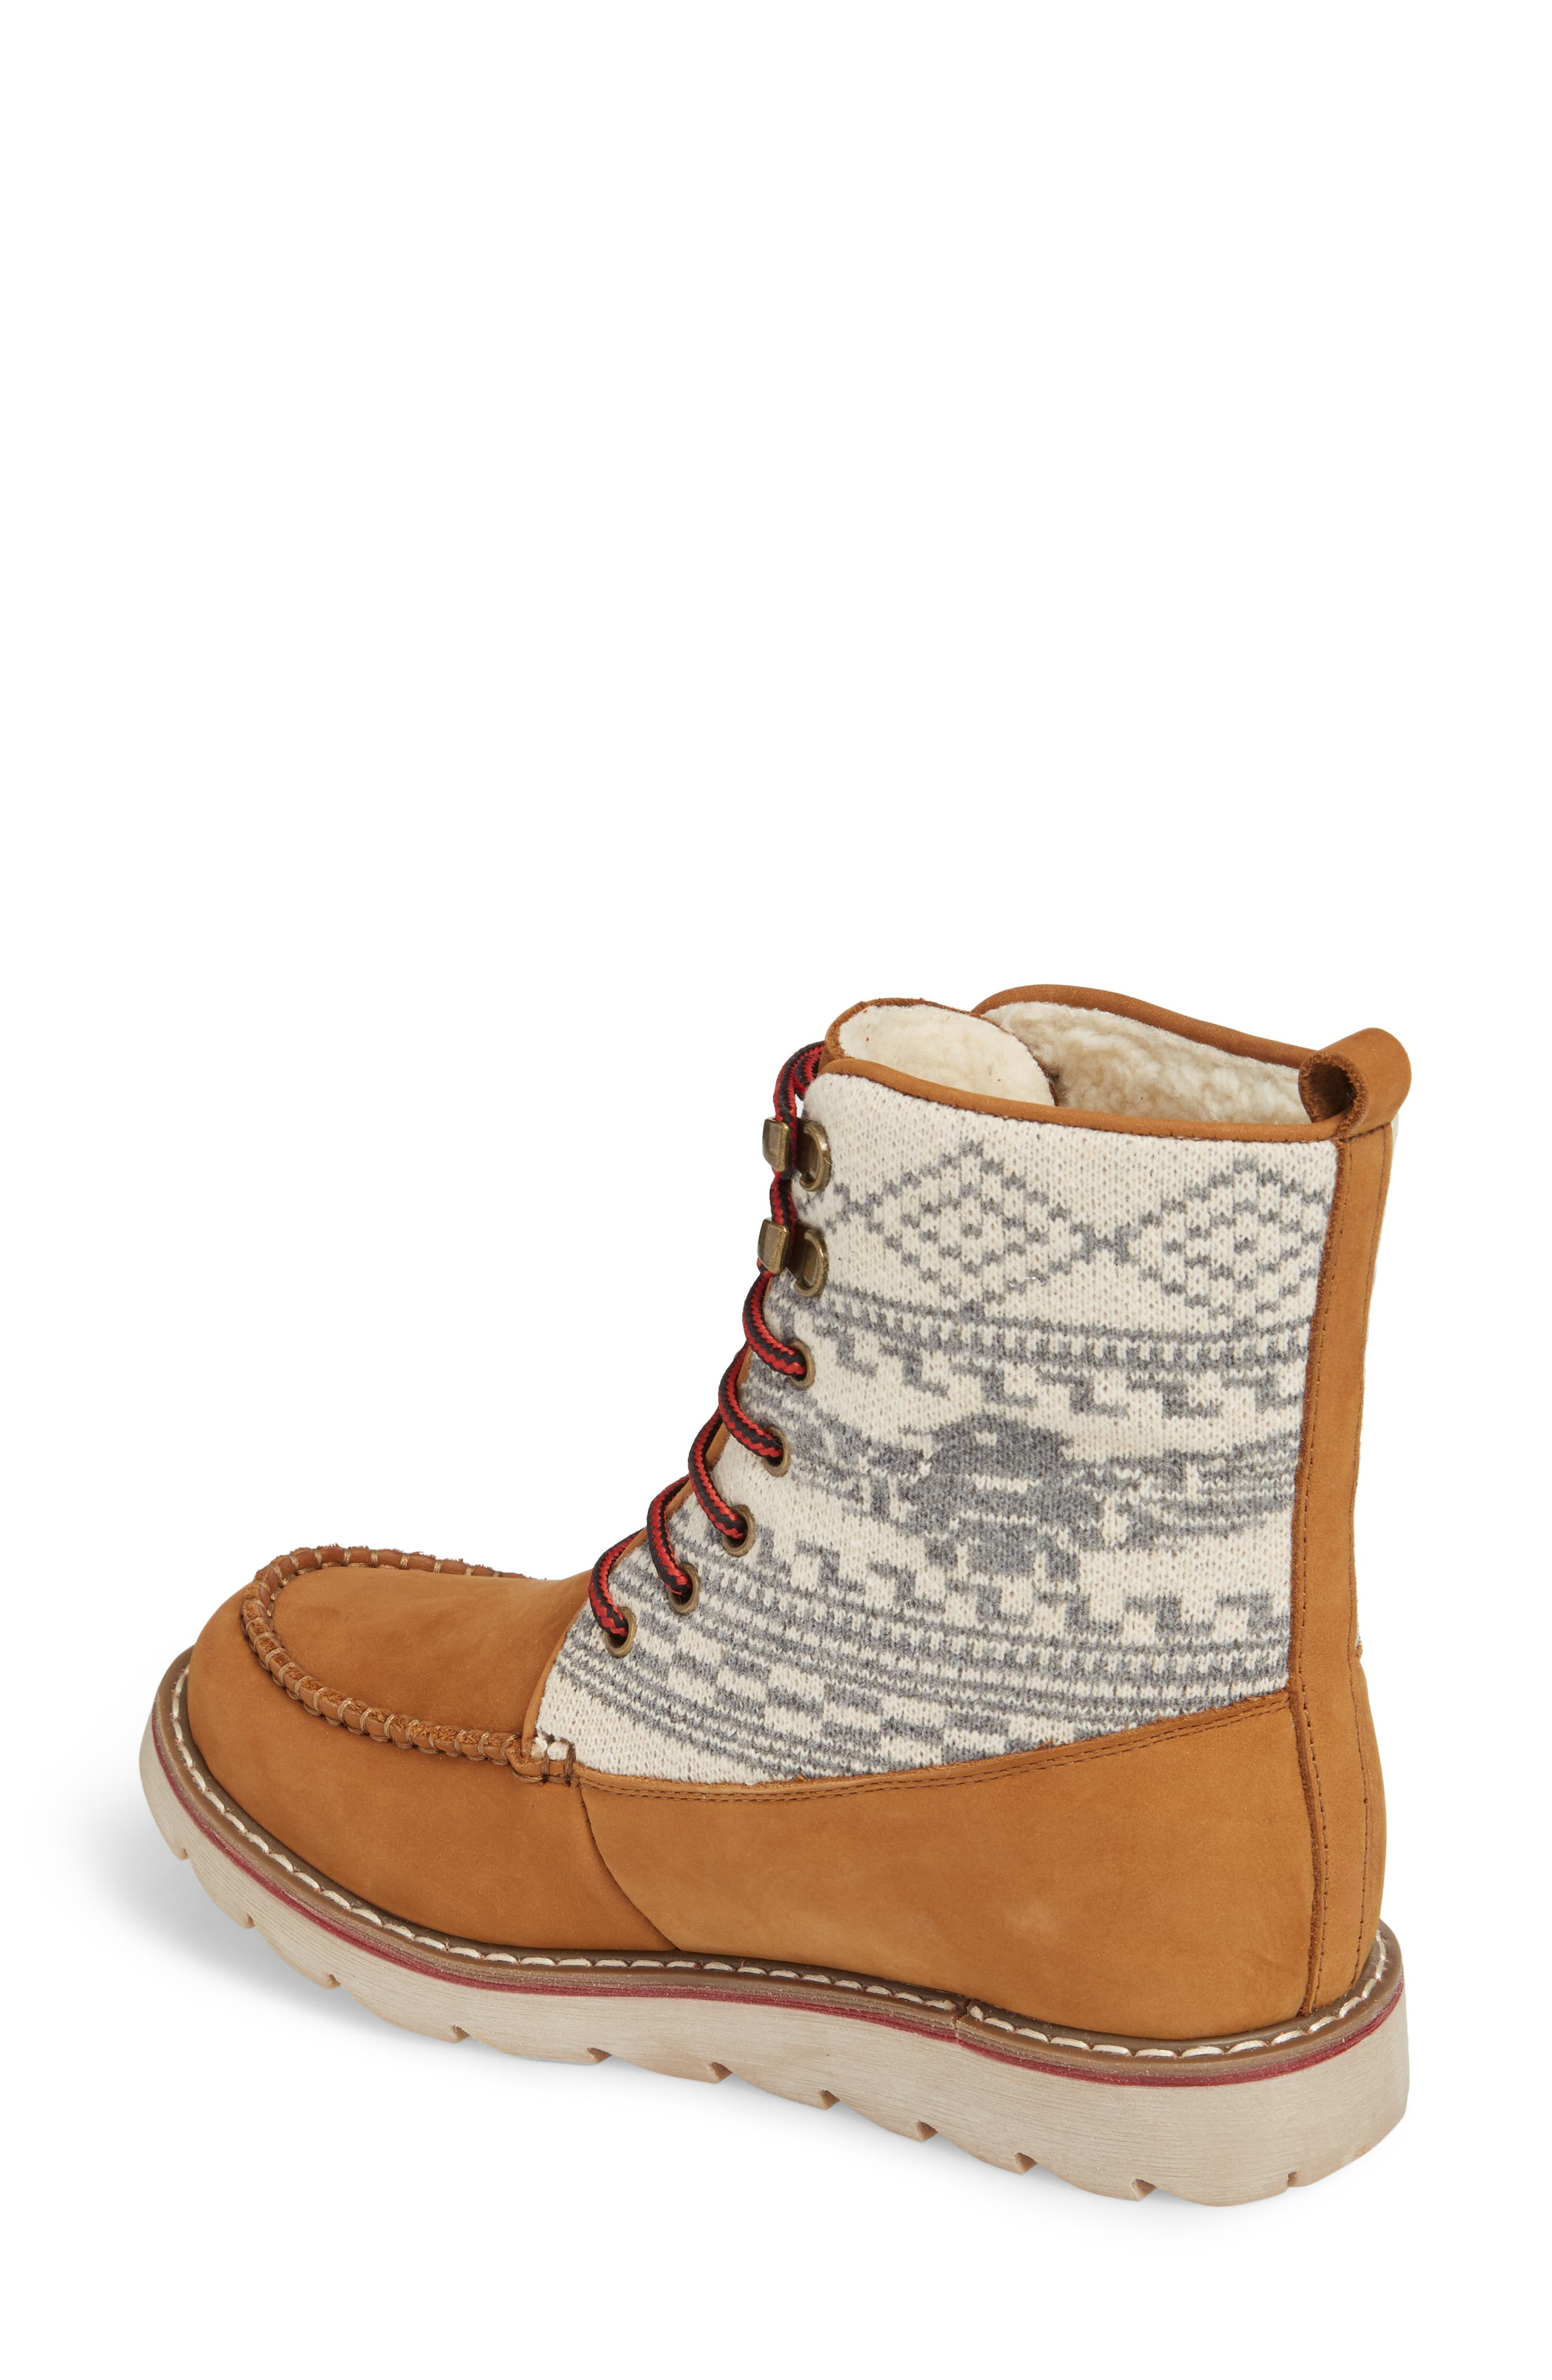 Patterned Waterproof Snow Boot,                             Alternate thumbnail 2, color,                             Tan Leather